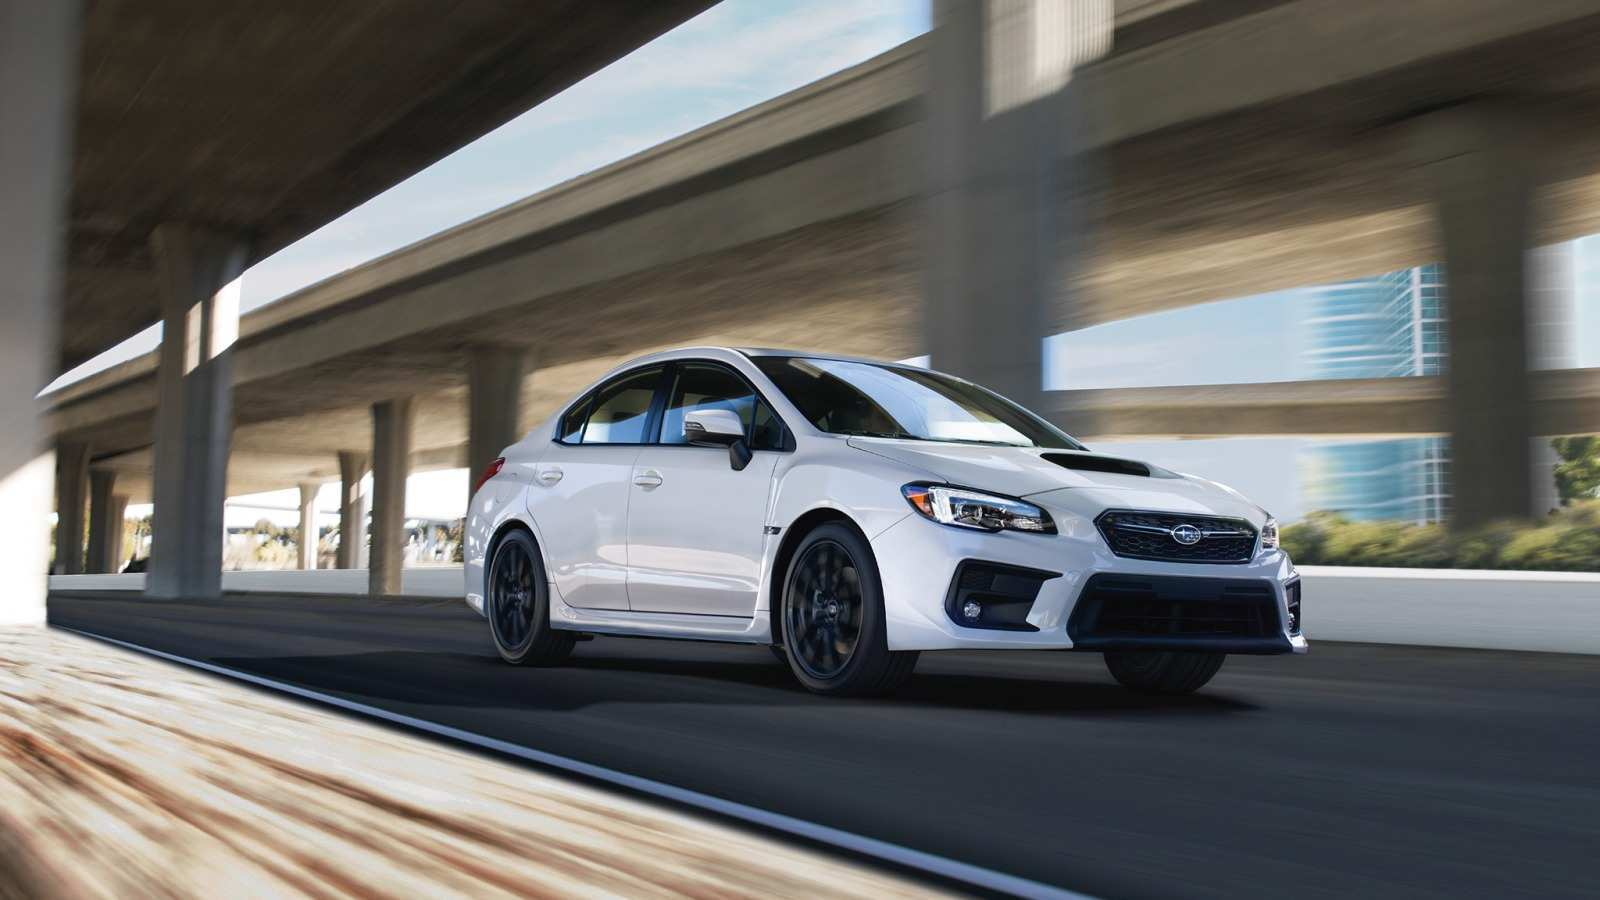 81 The Best 2019 Subaru Wrx Review Overview